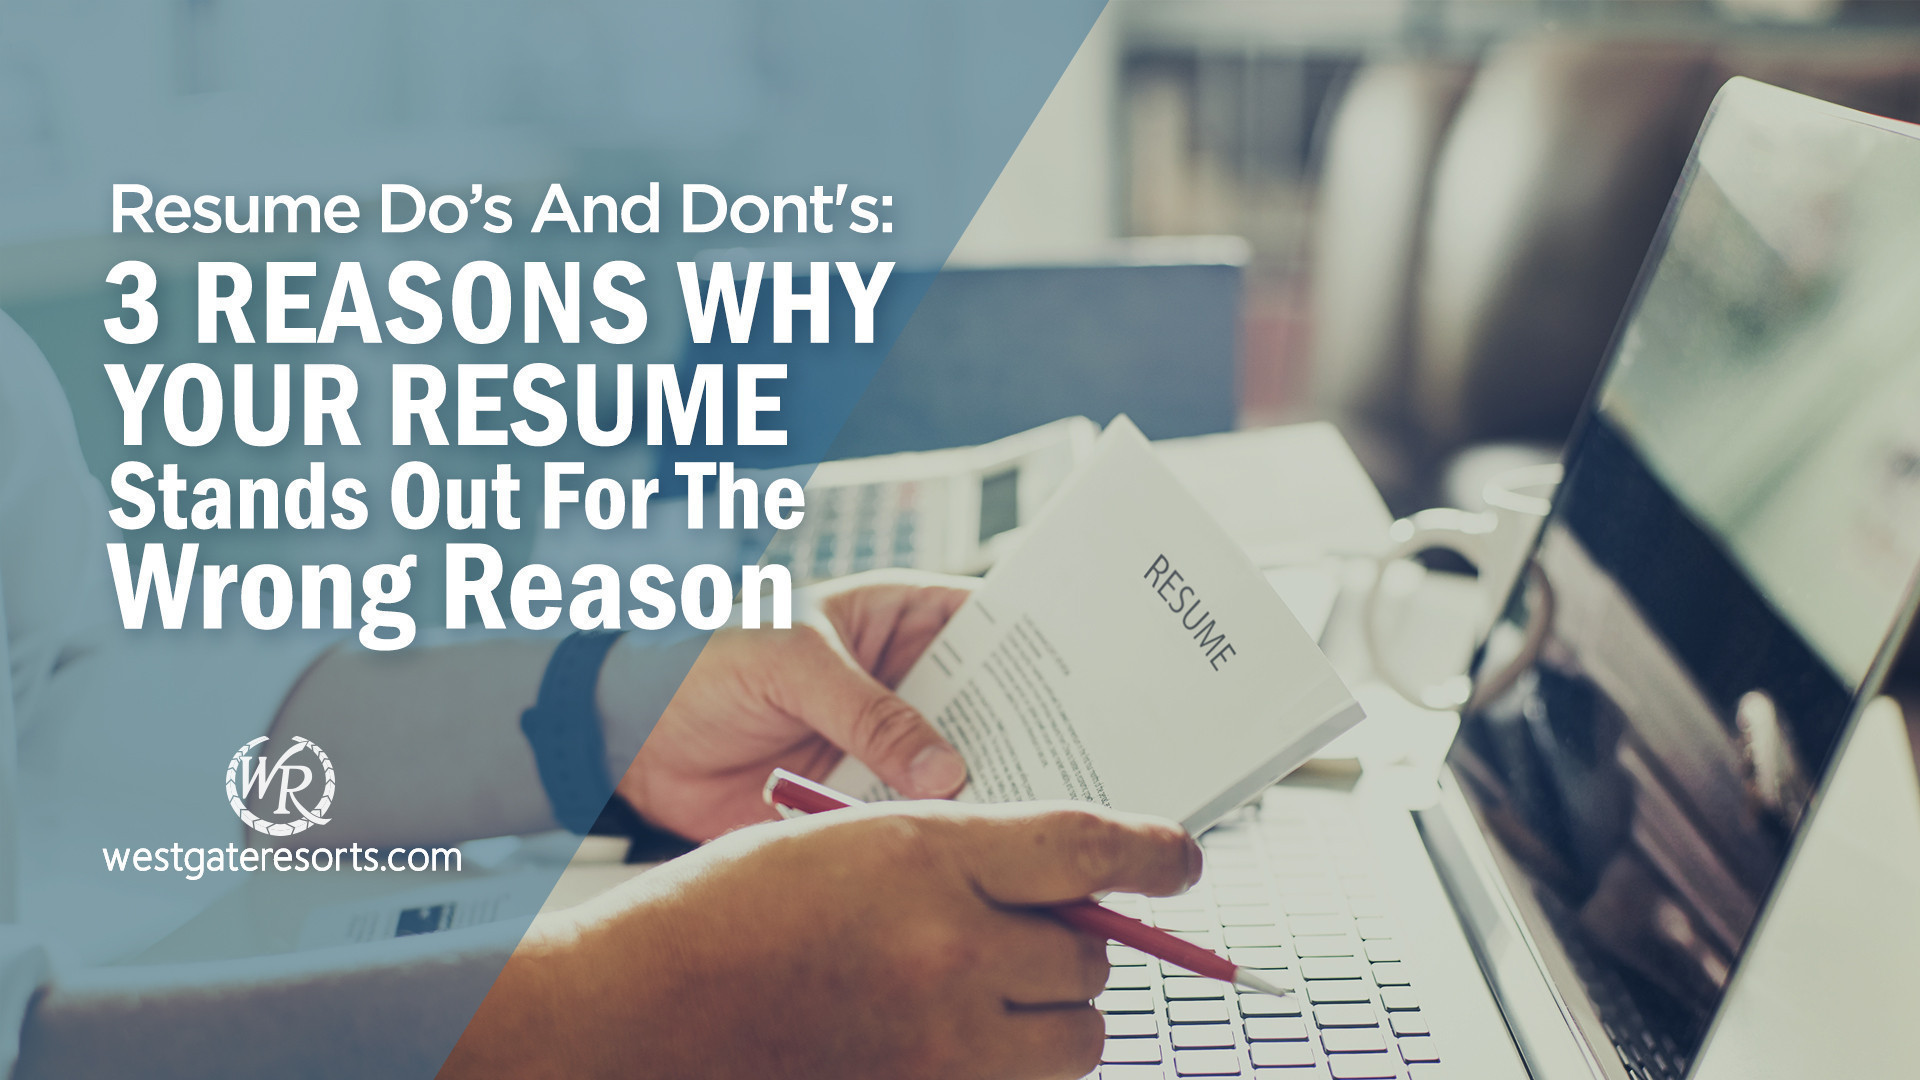 Redoing Your Resume | 3 Reasons Why Your Resume Stands Out For the Wrong Reason | Westgate Travel Careers